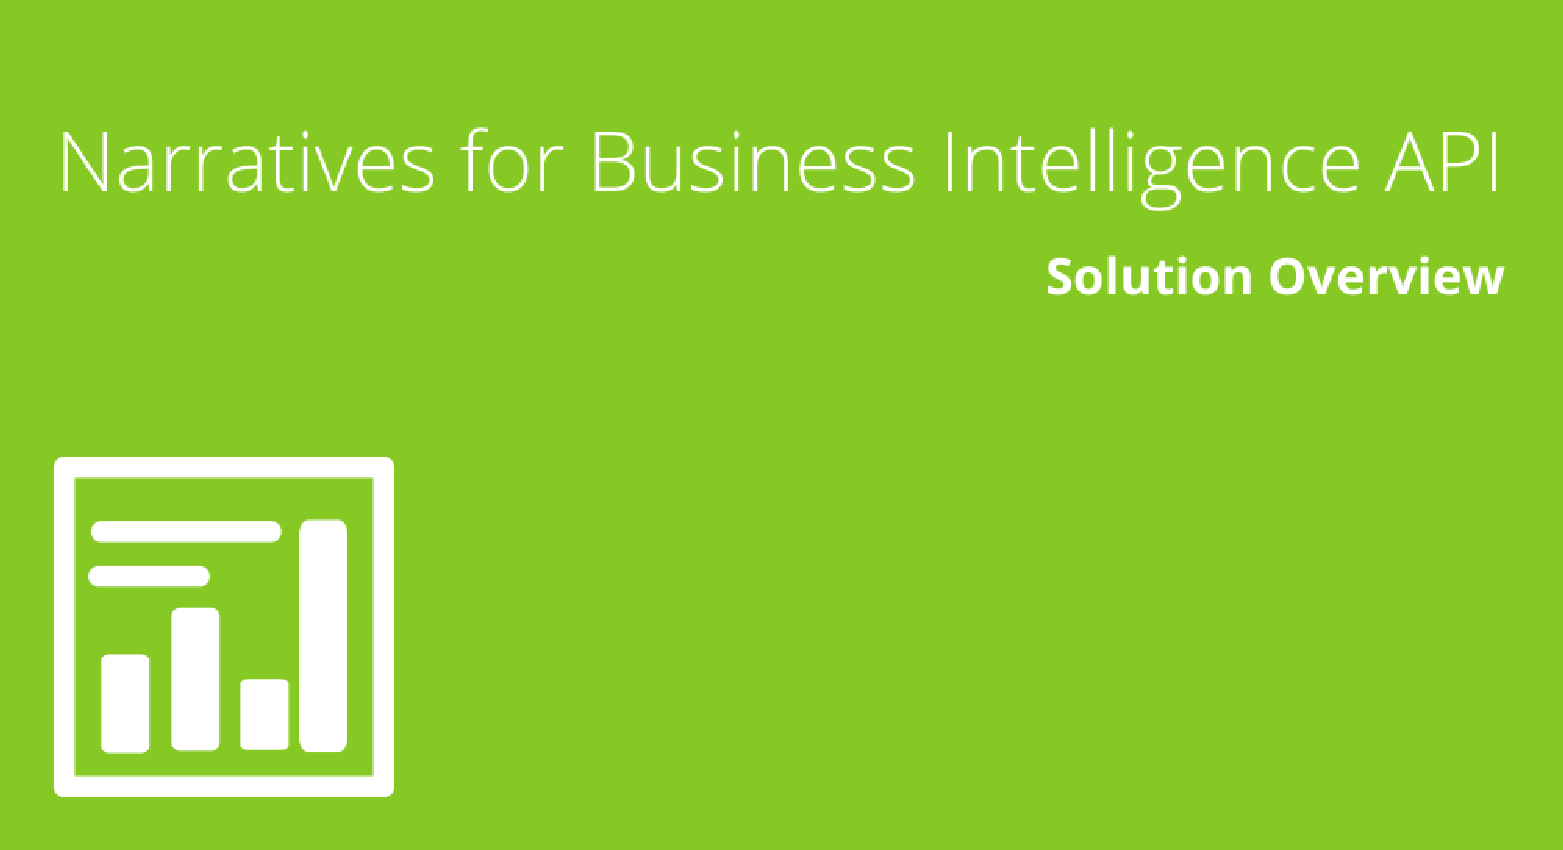 Narratives for Business Intelligence API Solution Overview